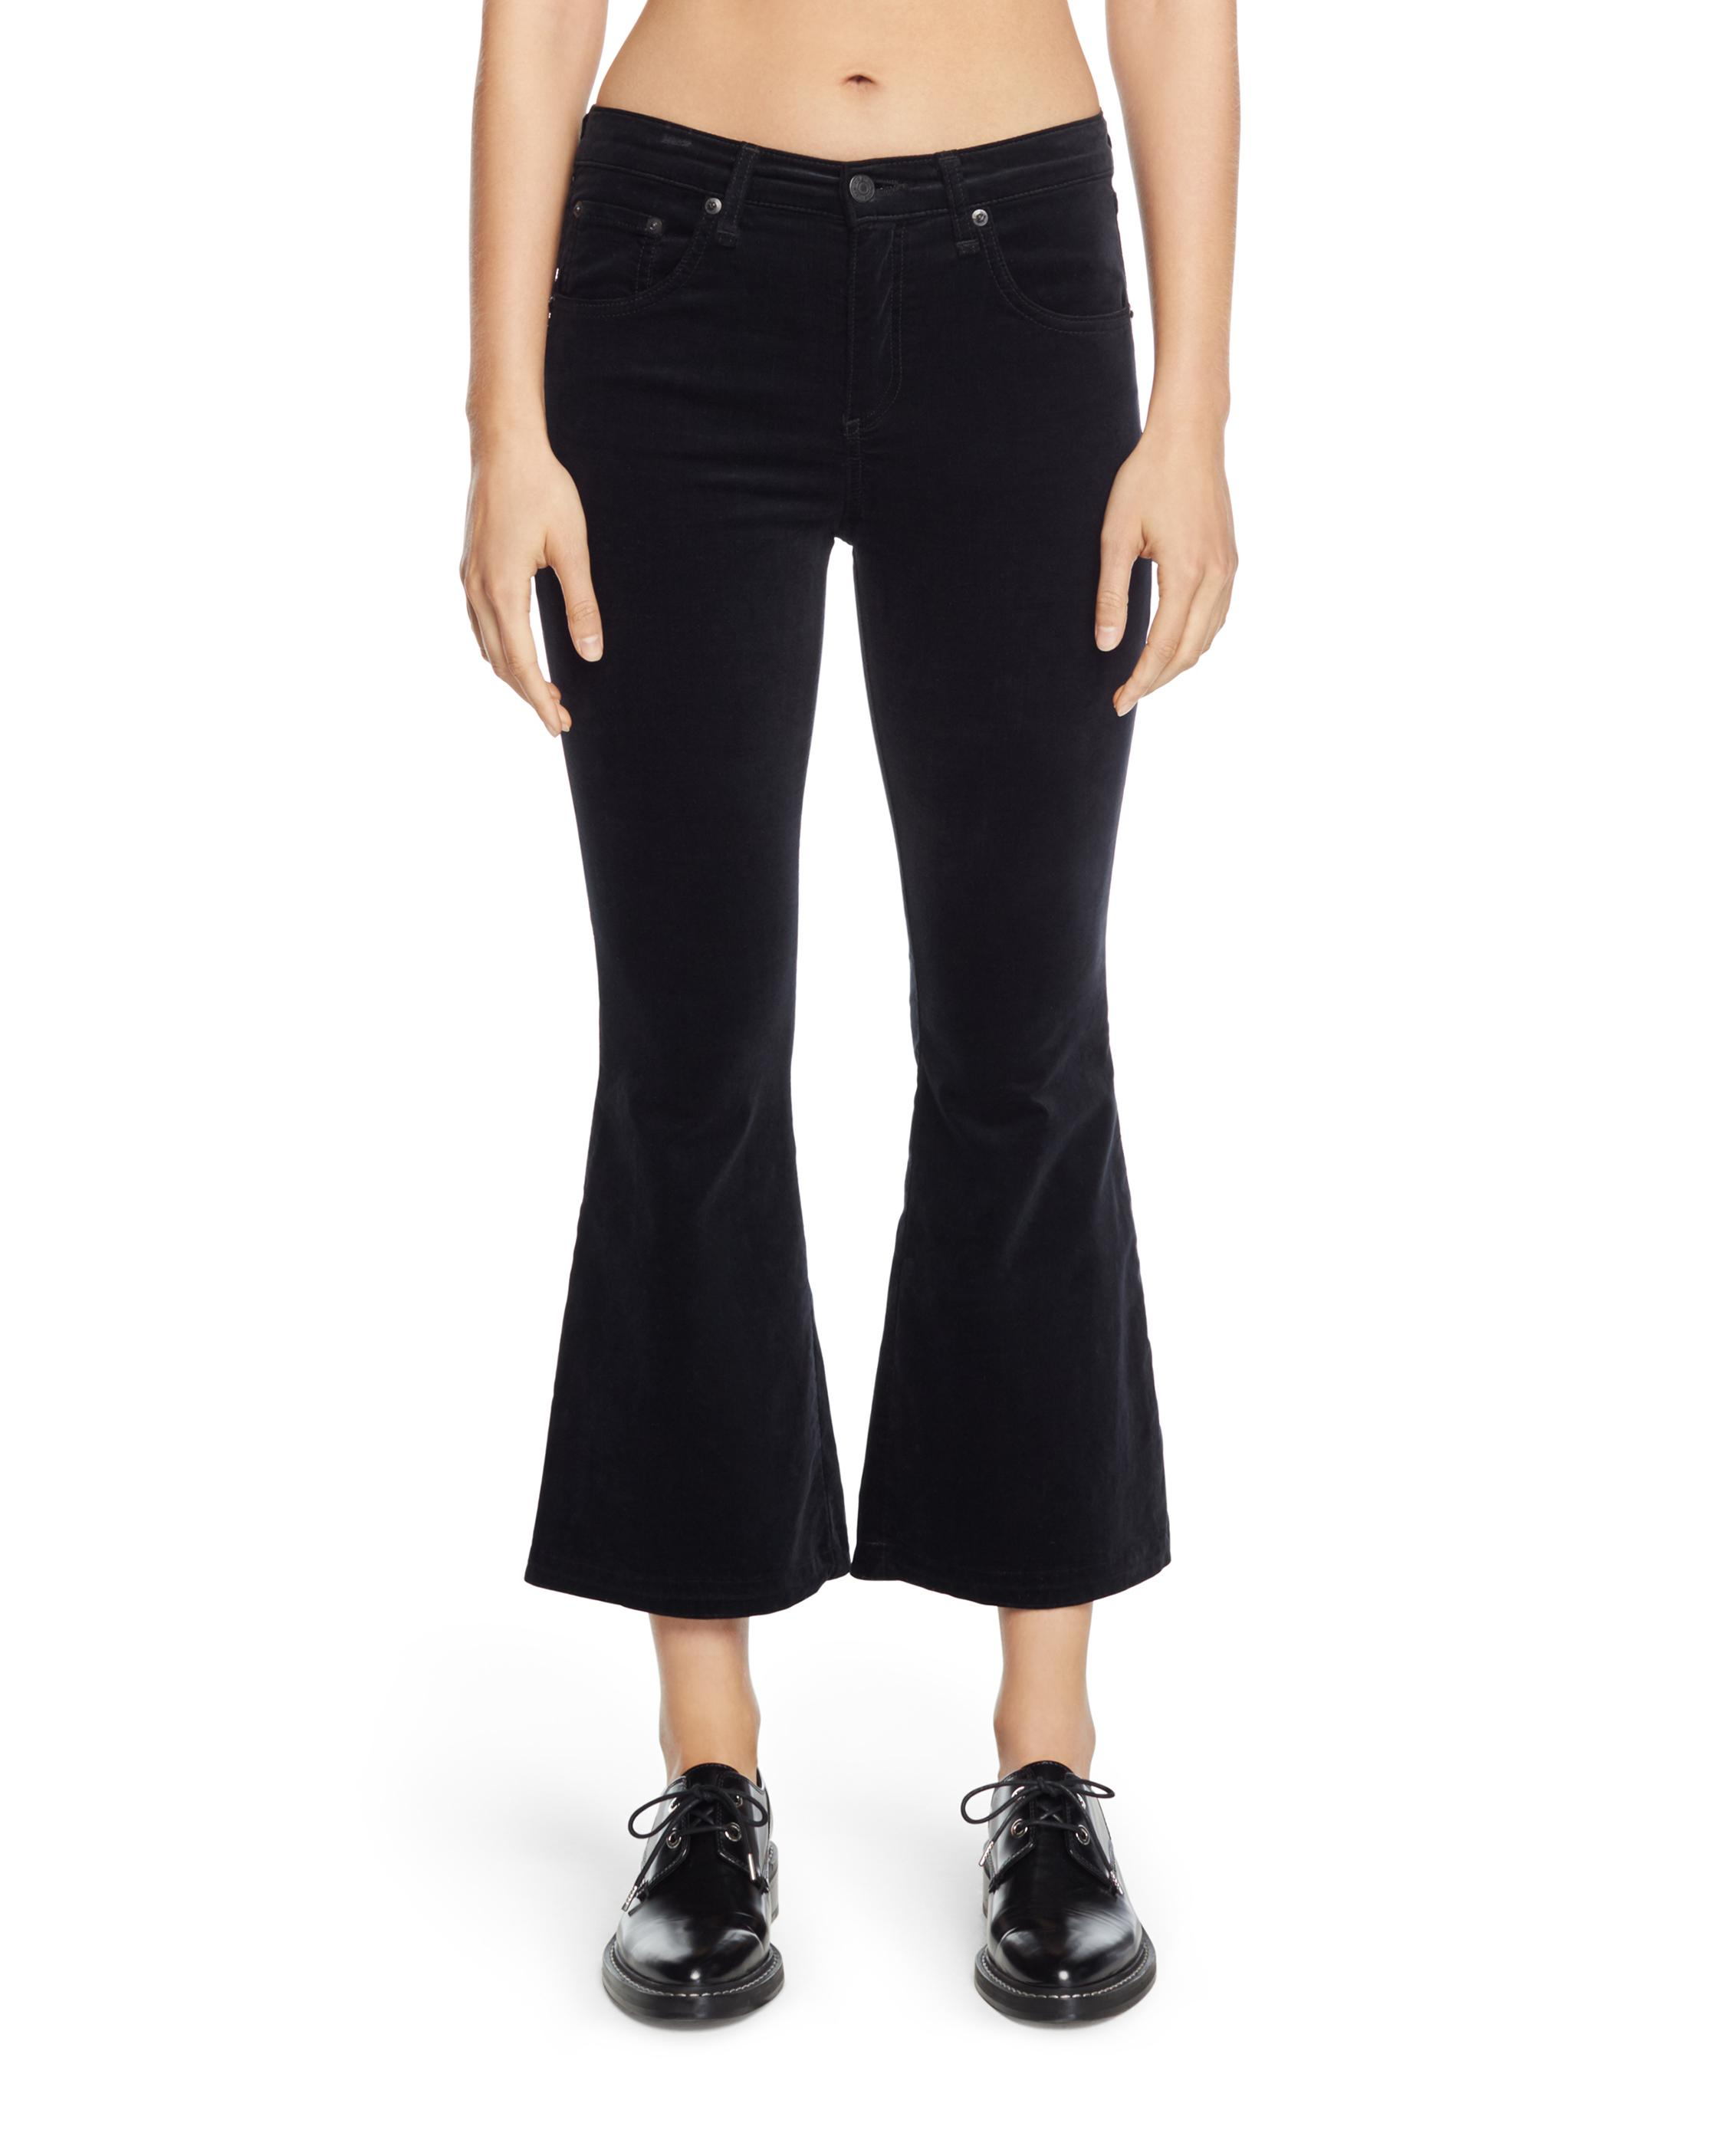 Rag & Bone flared trousers Top Quality Cheap Sale How Much Discount Big Sale v78nGhV19a